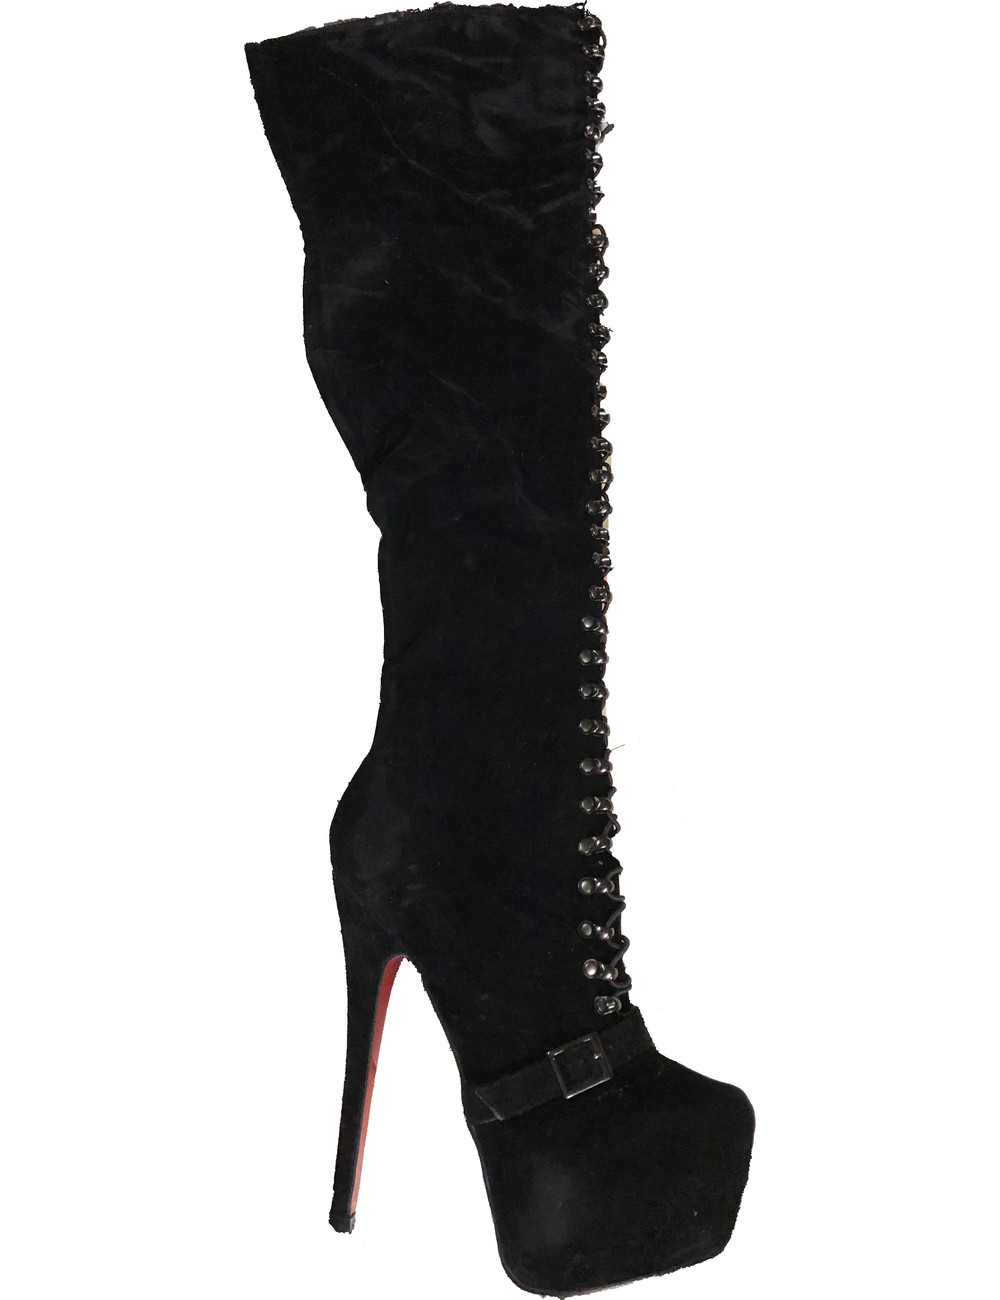 CoCo Black earth high lace up boots with belt - red soles